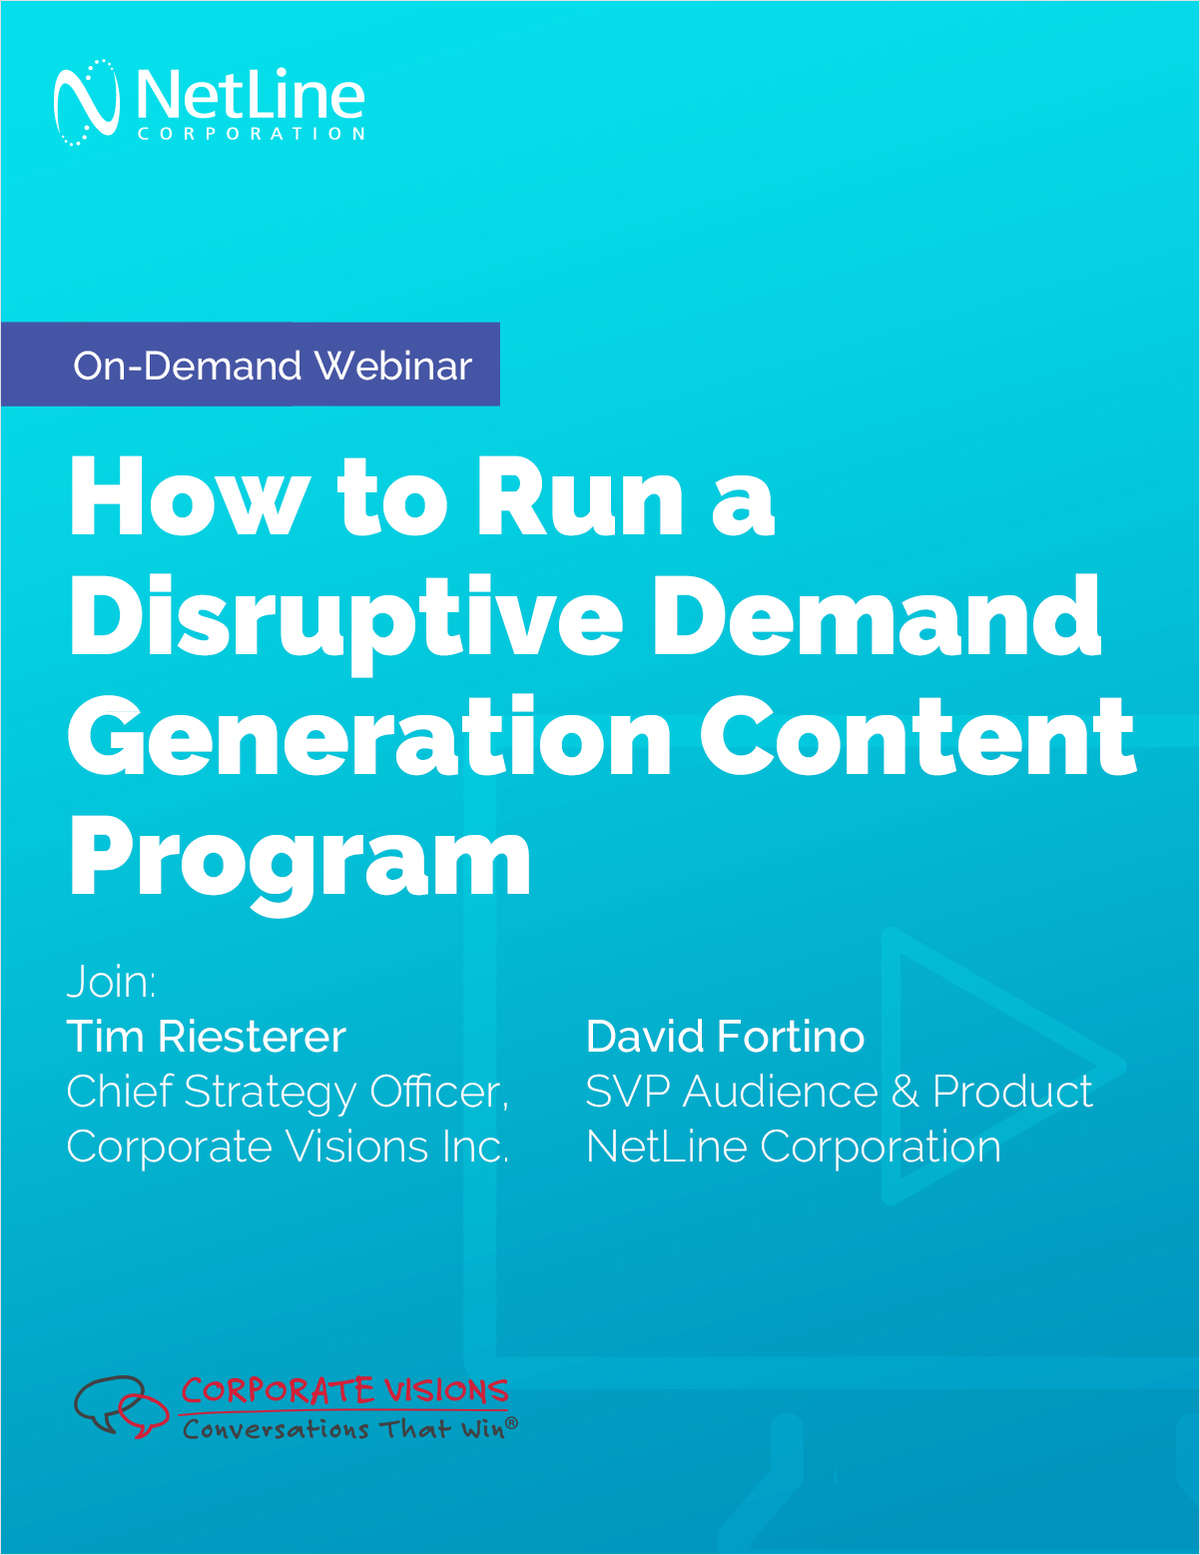 How to Run a Disruptive Demand Generation Content Program